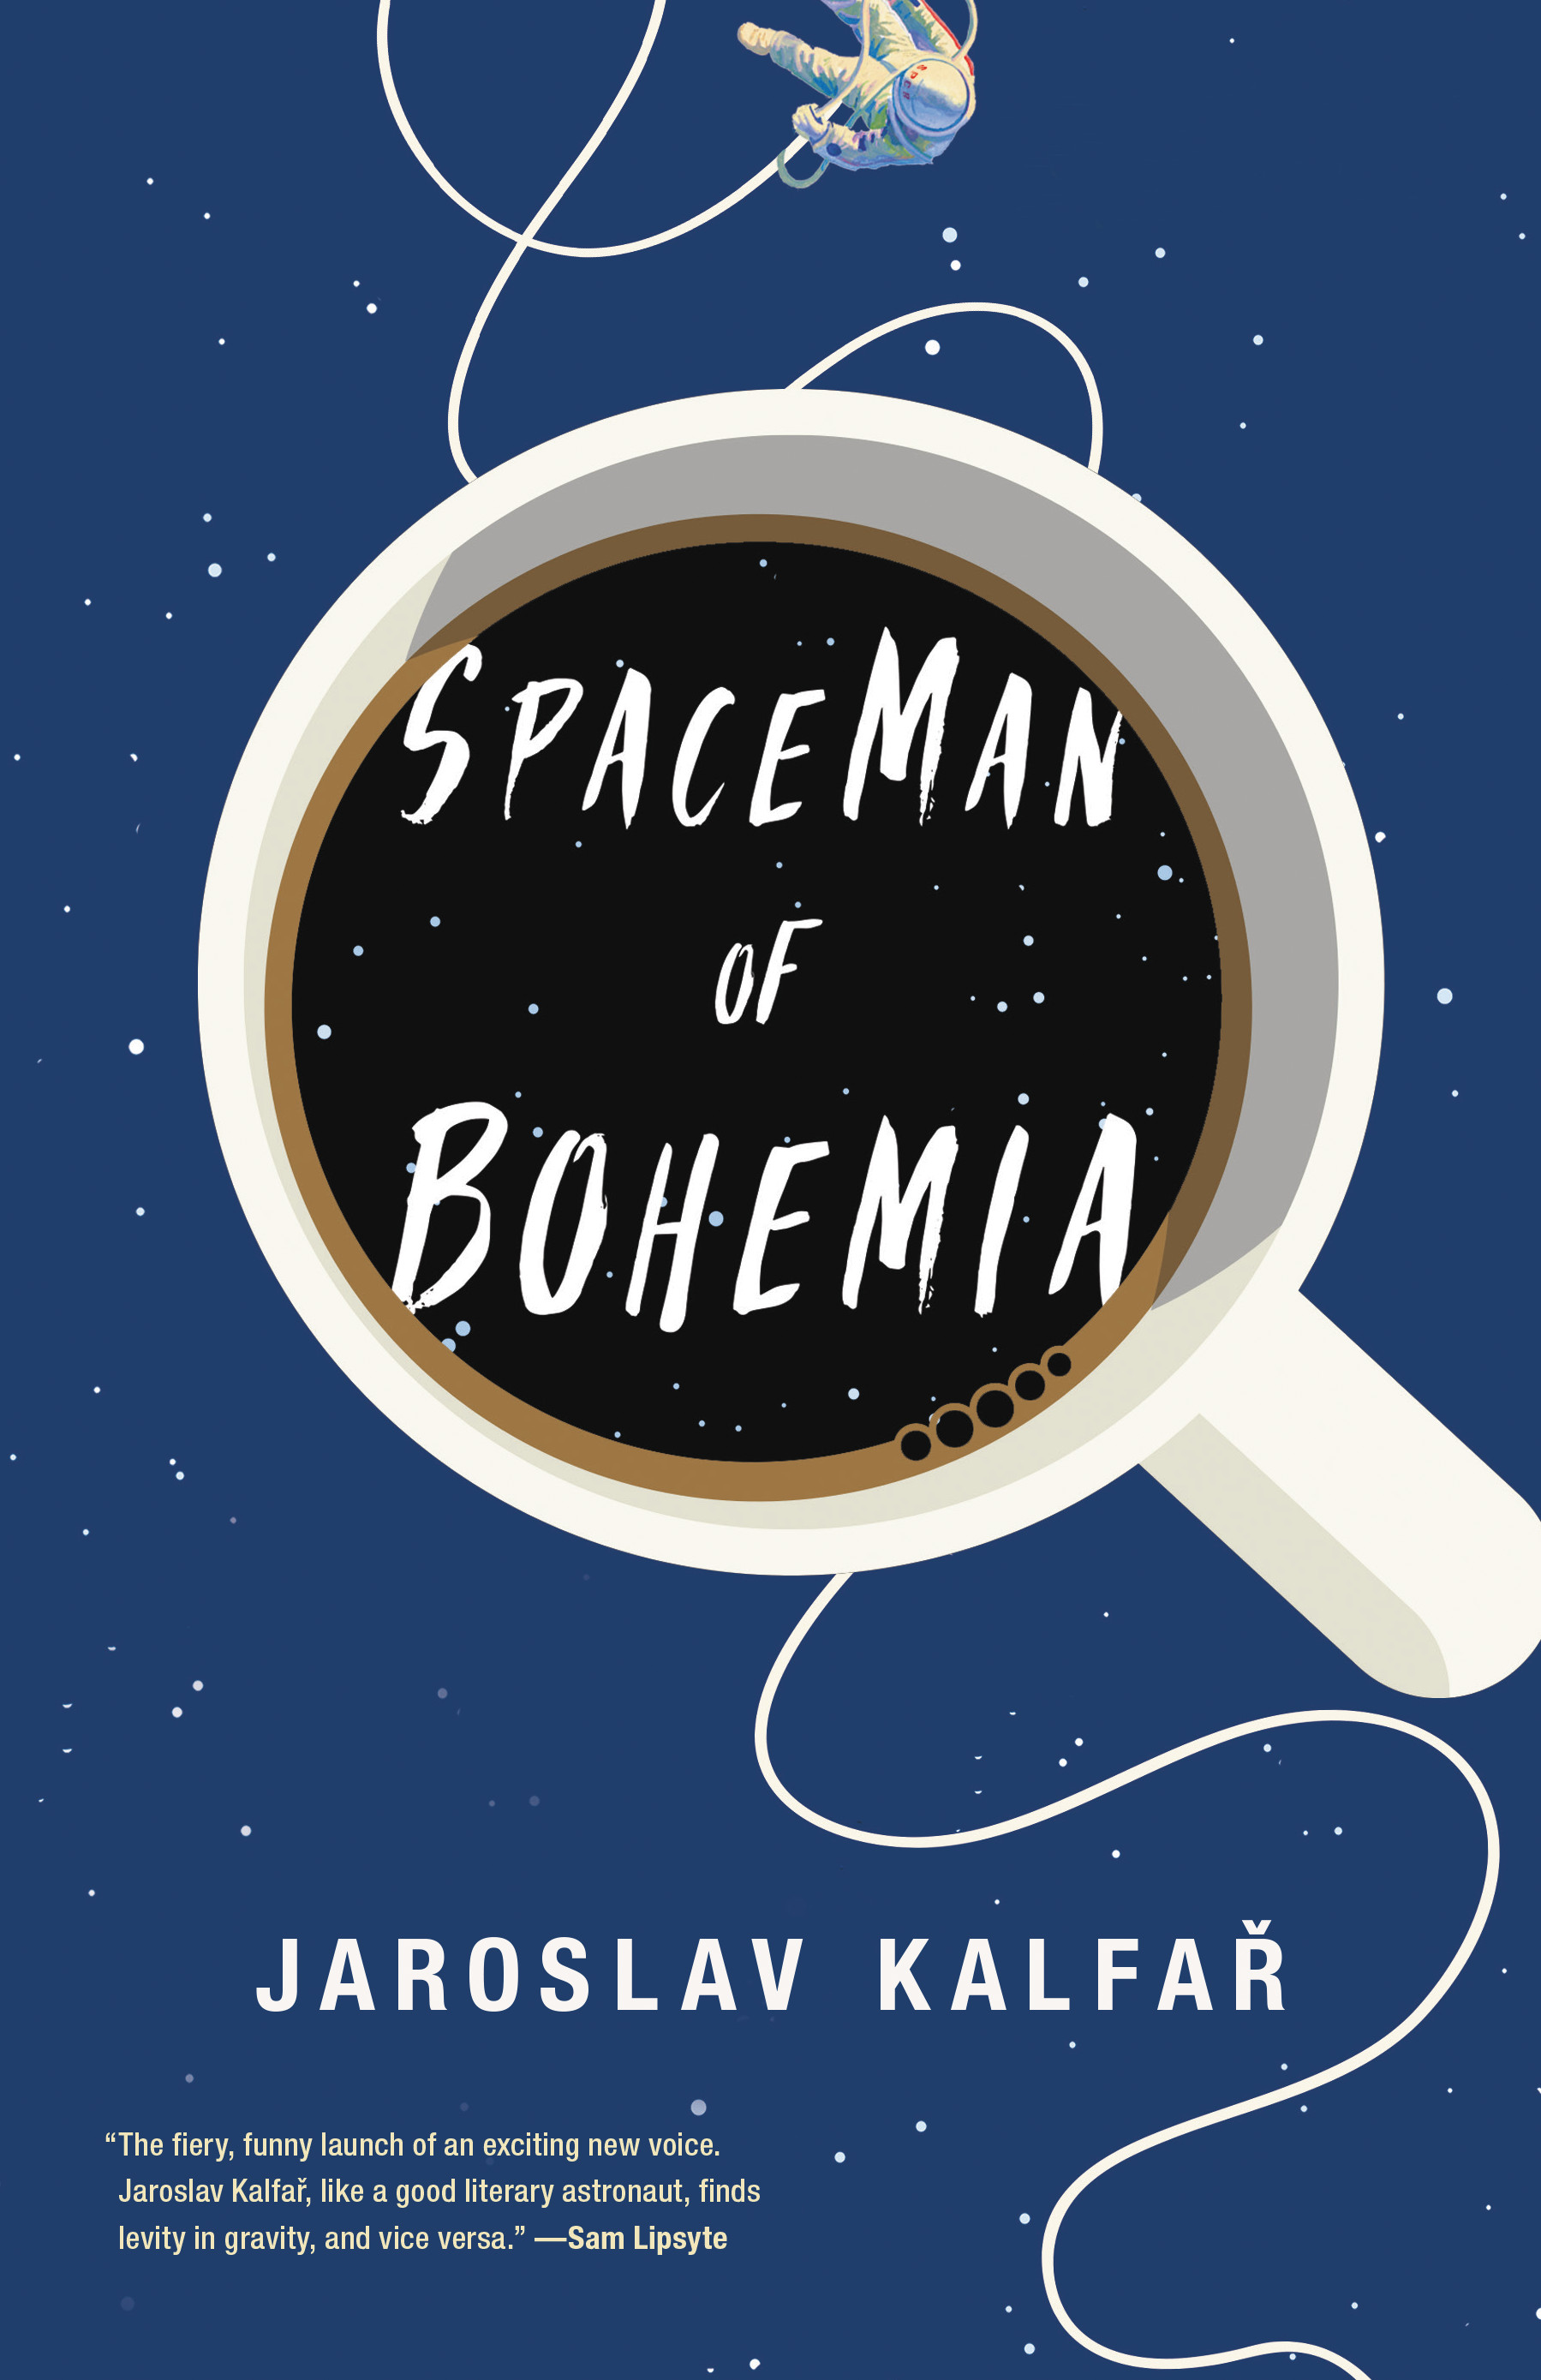 Book Launch: Spaceman of Bohemia by Jaroslav Kalfař with Ryan Britt